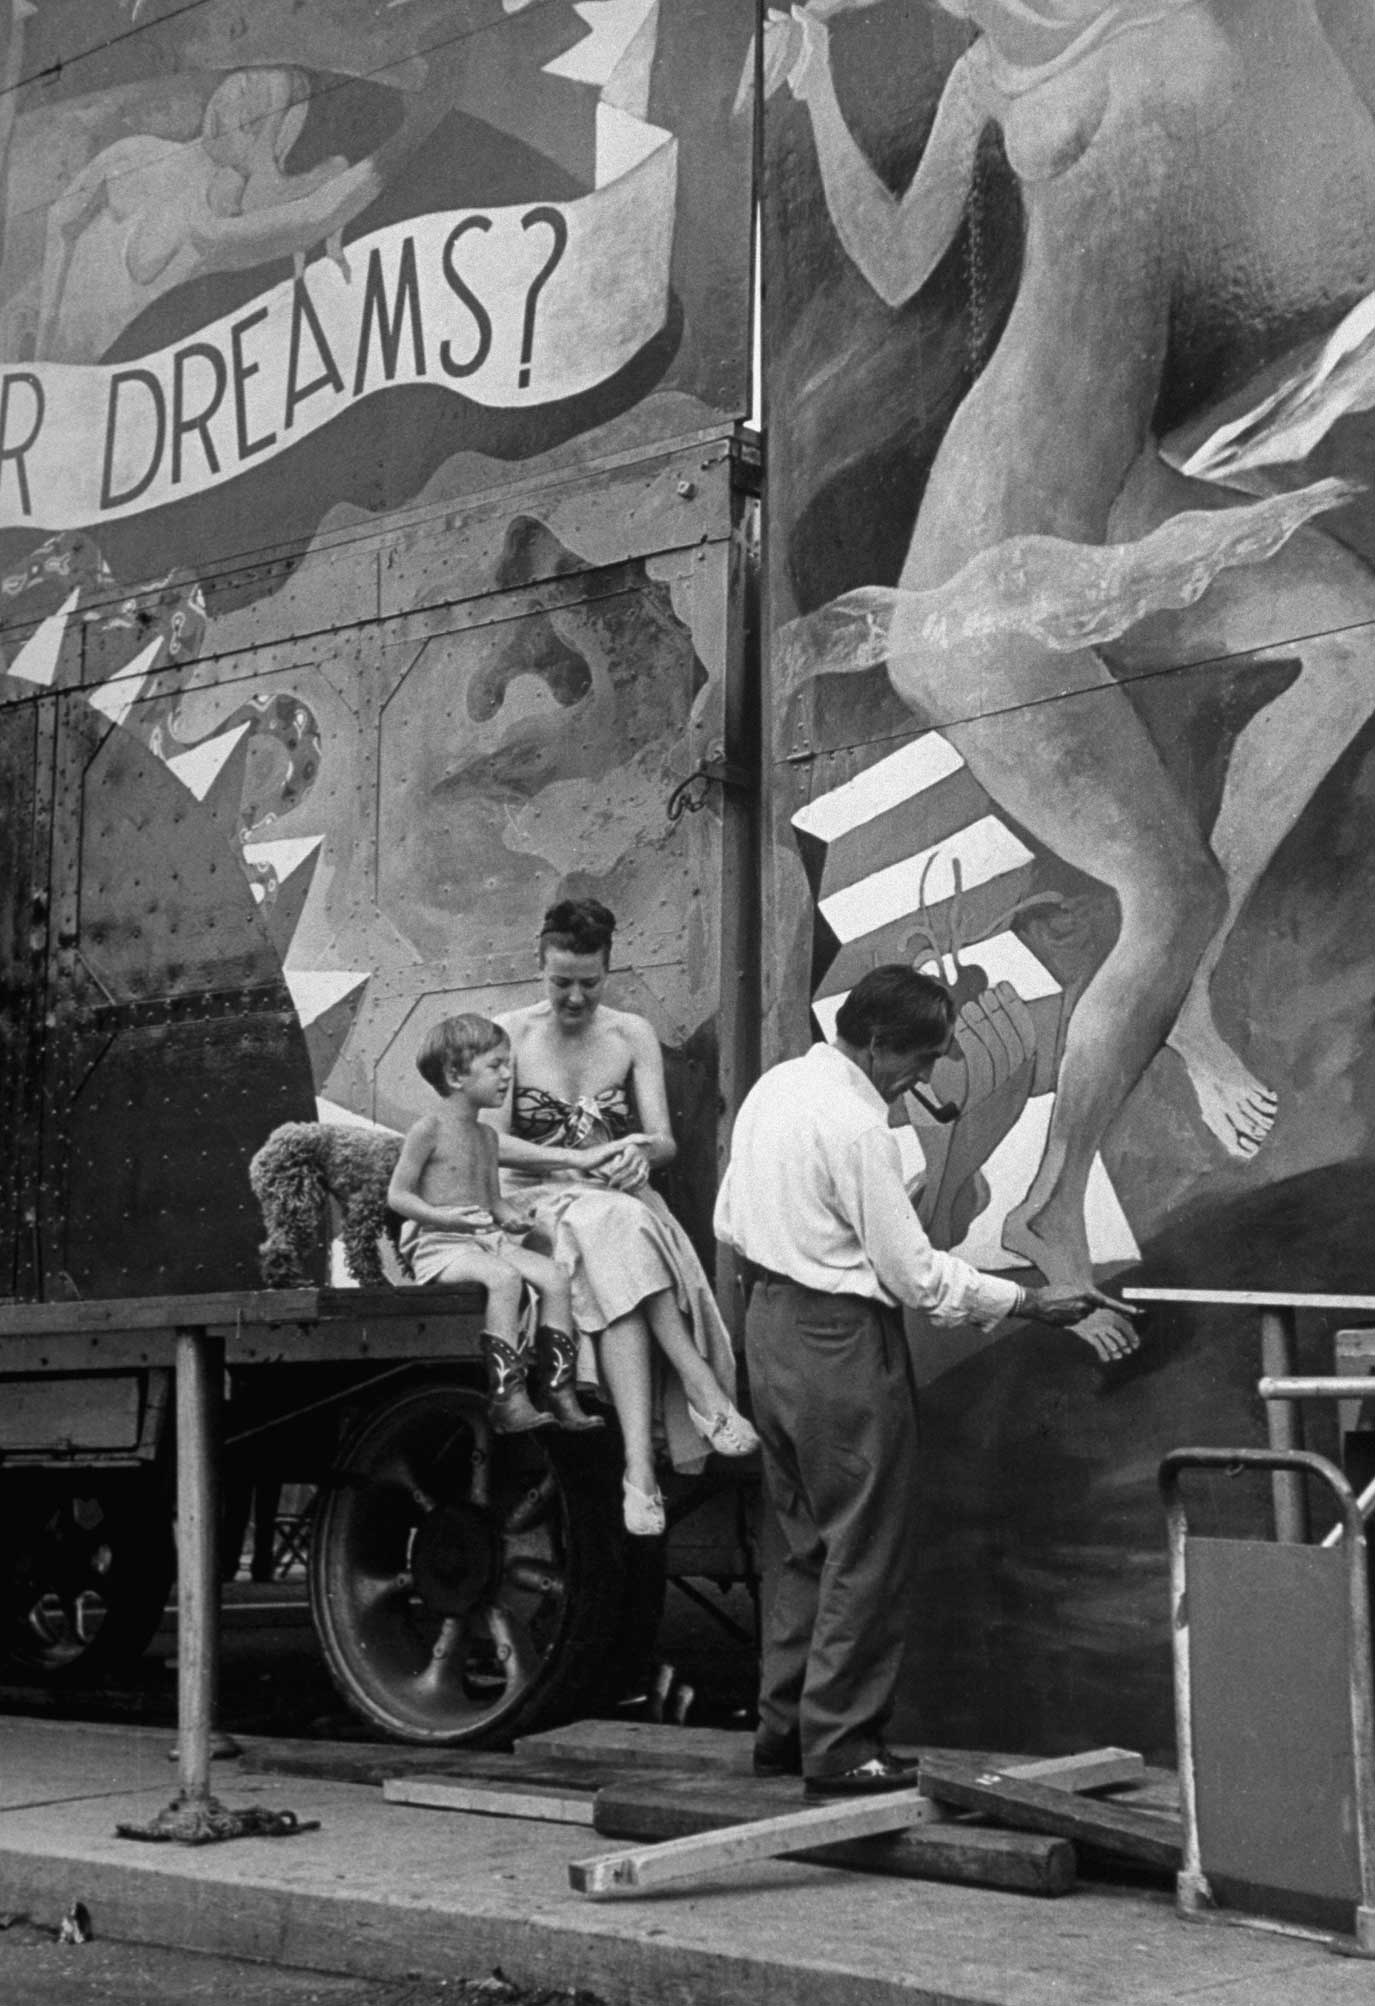 """<b>Caption from LIFE.</b> """"Gypsy's husband Julio . . . paints the entrance while Gypsy and son watch. His attraction [in the carnival] is called Dream Show."""""""